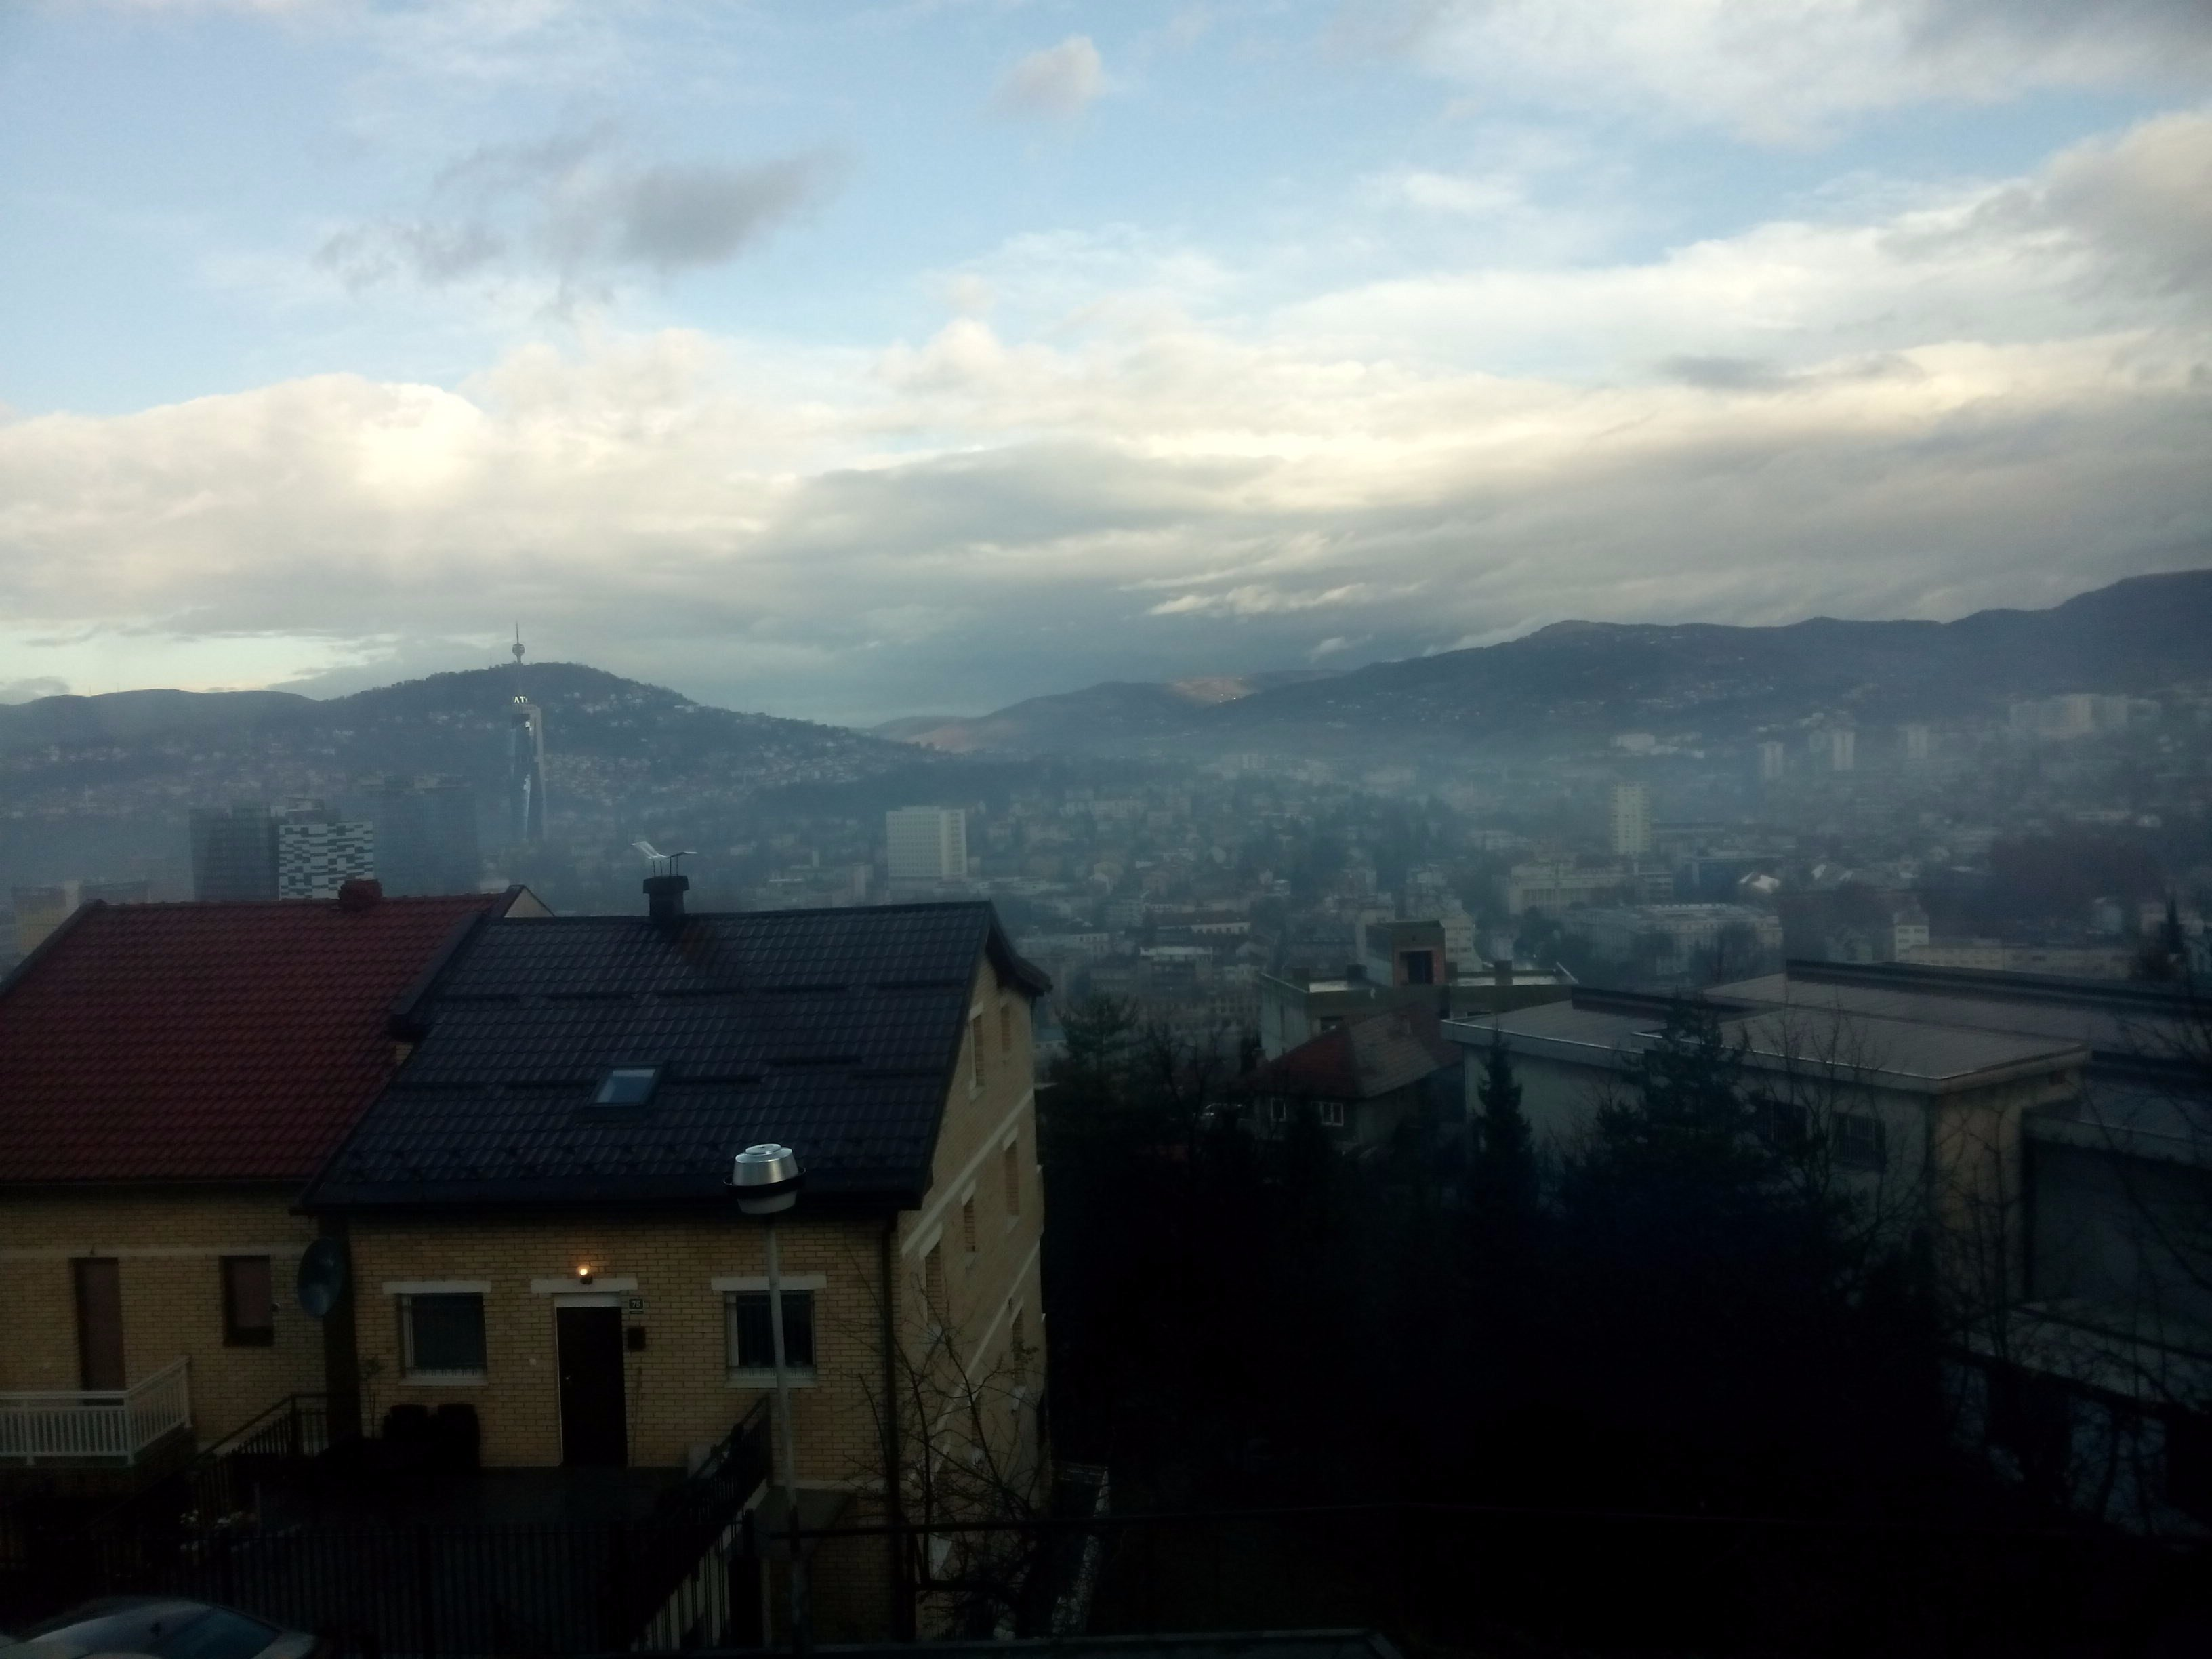 A view over Sarajevo city center from the mountainside with some clouds and a little blue sky